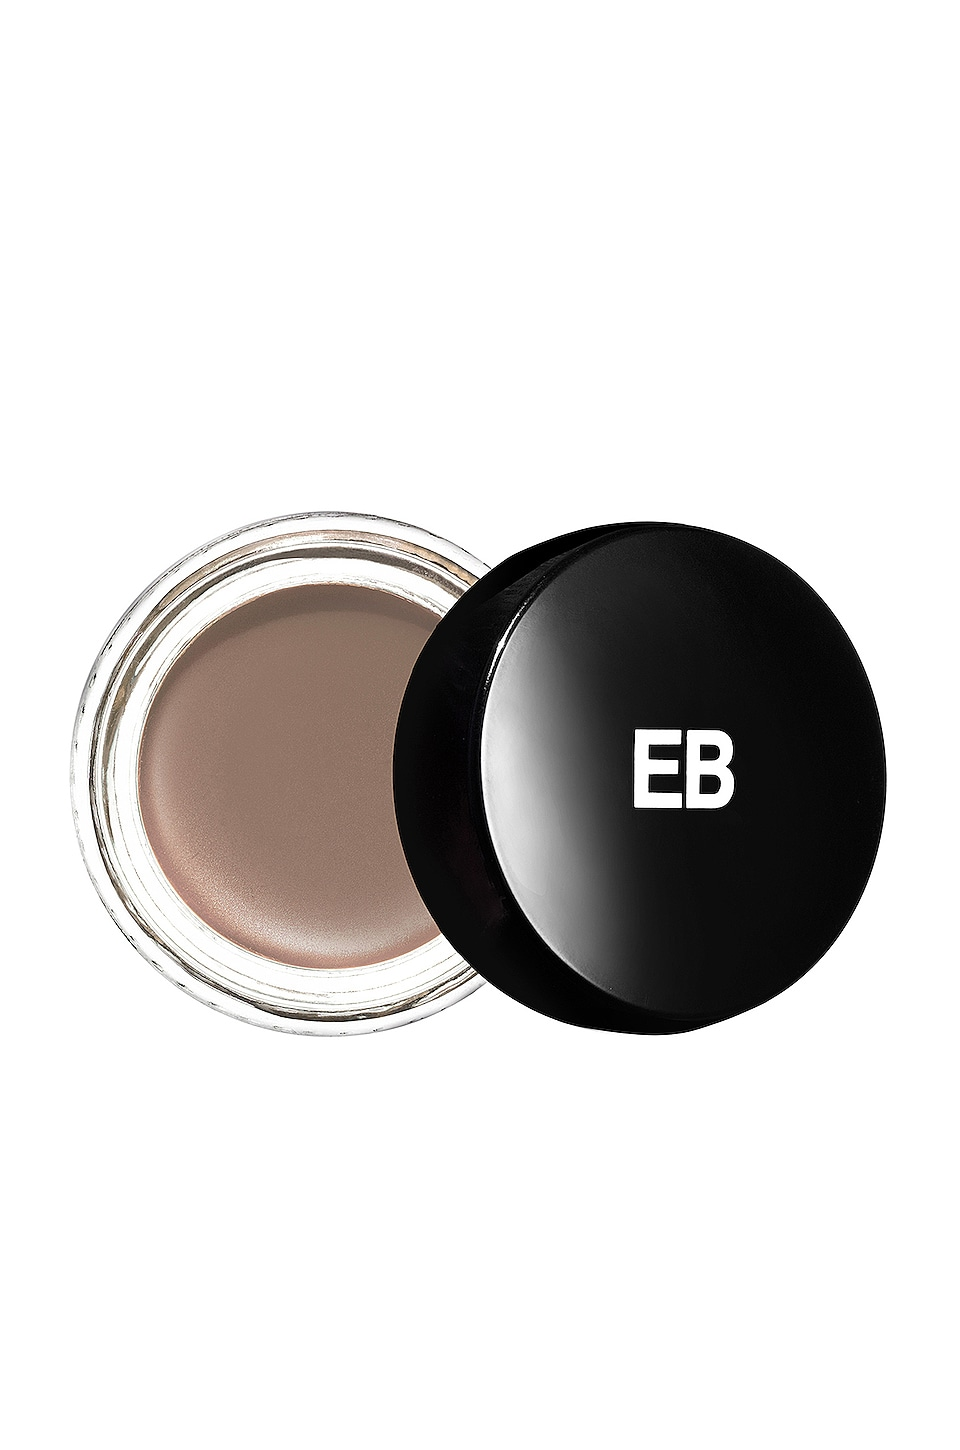 Edward Bess Big Wow Full Brow Pomade in Medium Taupe